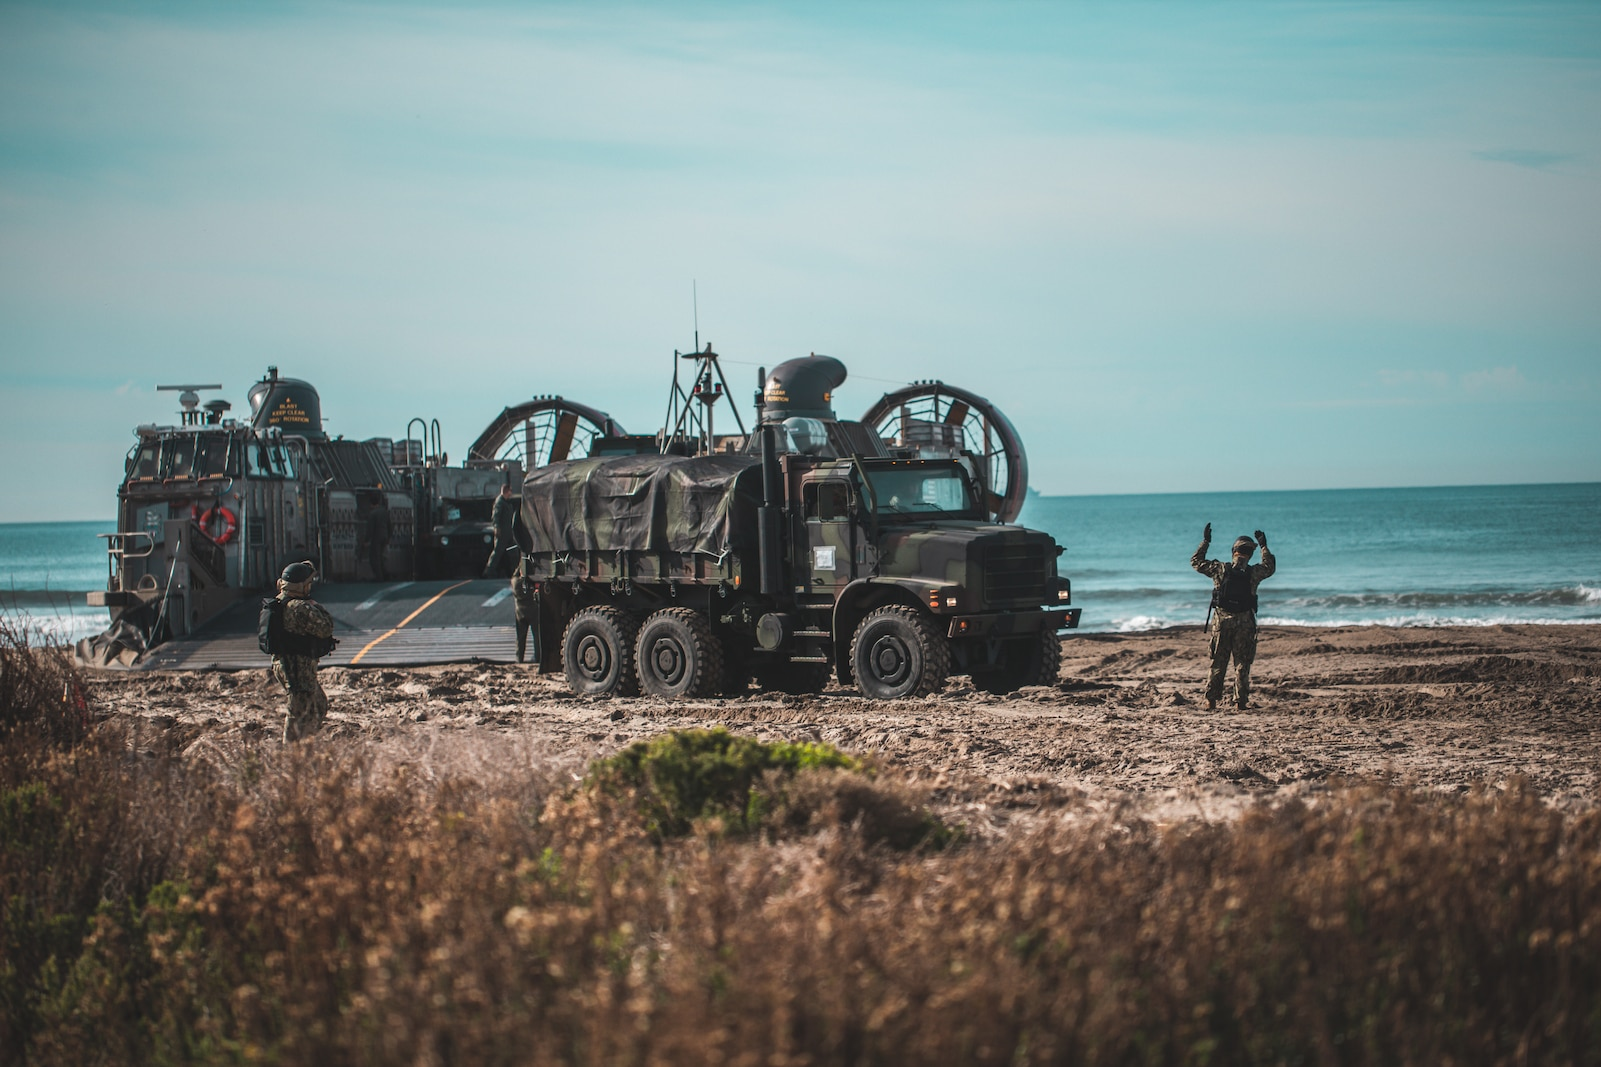 U.S. Marines with Combat Logistics Battalion 1, 1st Marine Logistics Group, offload a medium tactical vehicle replacement truck from a U.S. Navy landing craft air cushion during an amphibious assault while participating in Steel Knight 20 at Marine Corps Base Camp Pendleton, California on Dec. 6, 2019.